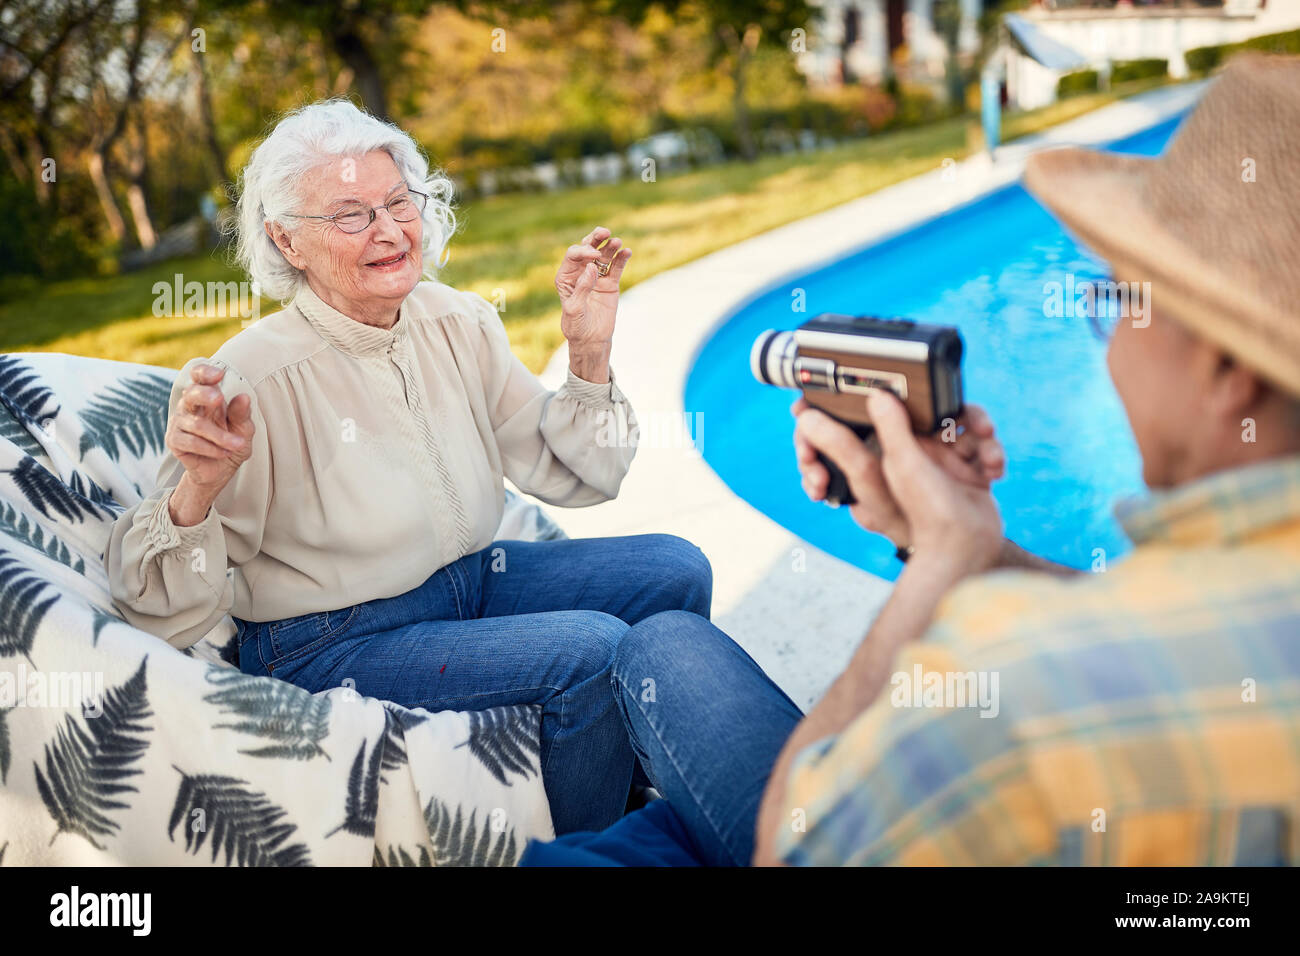 Smiling Elderly Couple Have Fun At Holiday And Captures With A